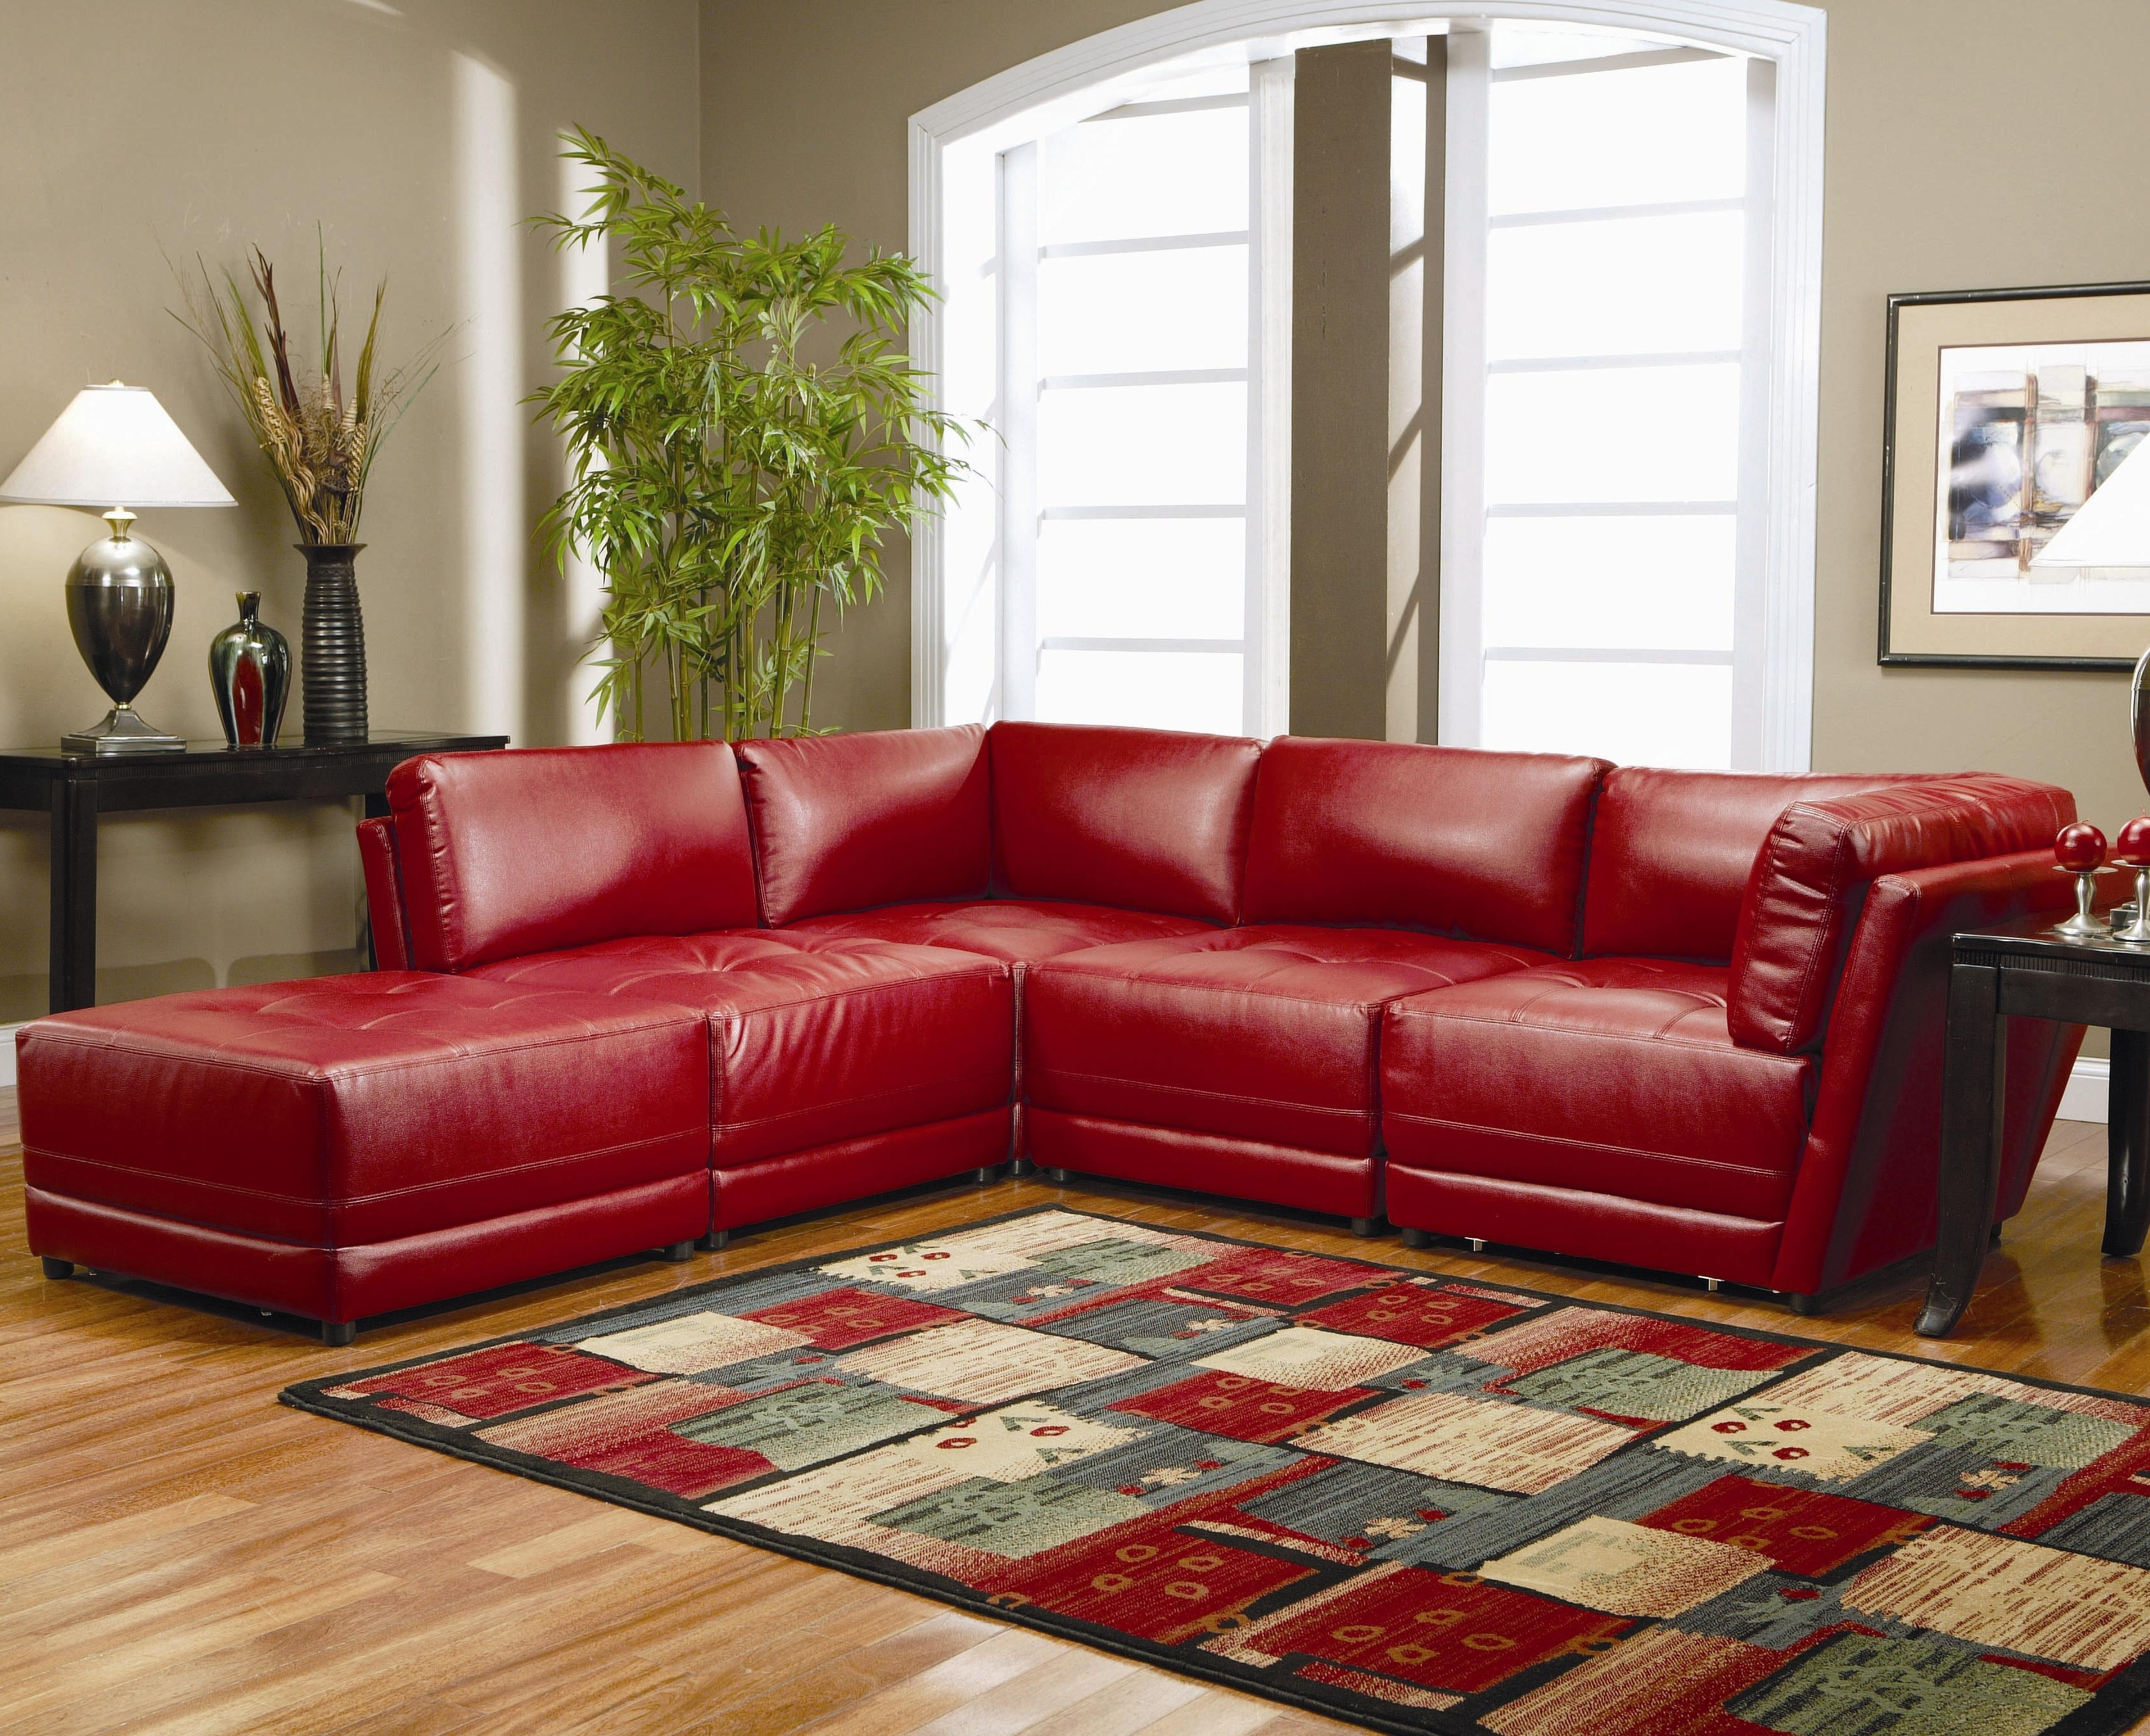 Warm Red Leather Sectional L Shaped Sofa Design Ideas For Living In Red Faux Leather Sectionals (Image 10 of 10)